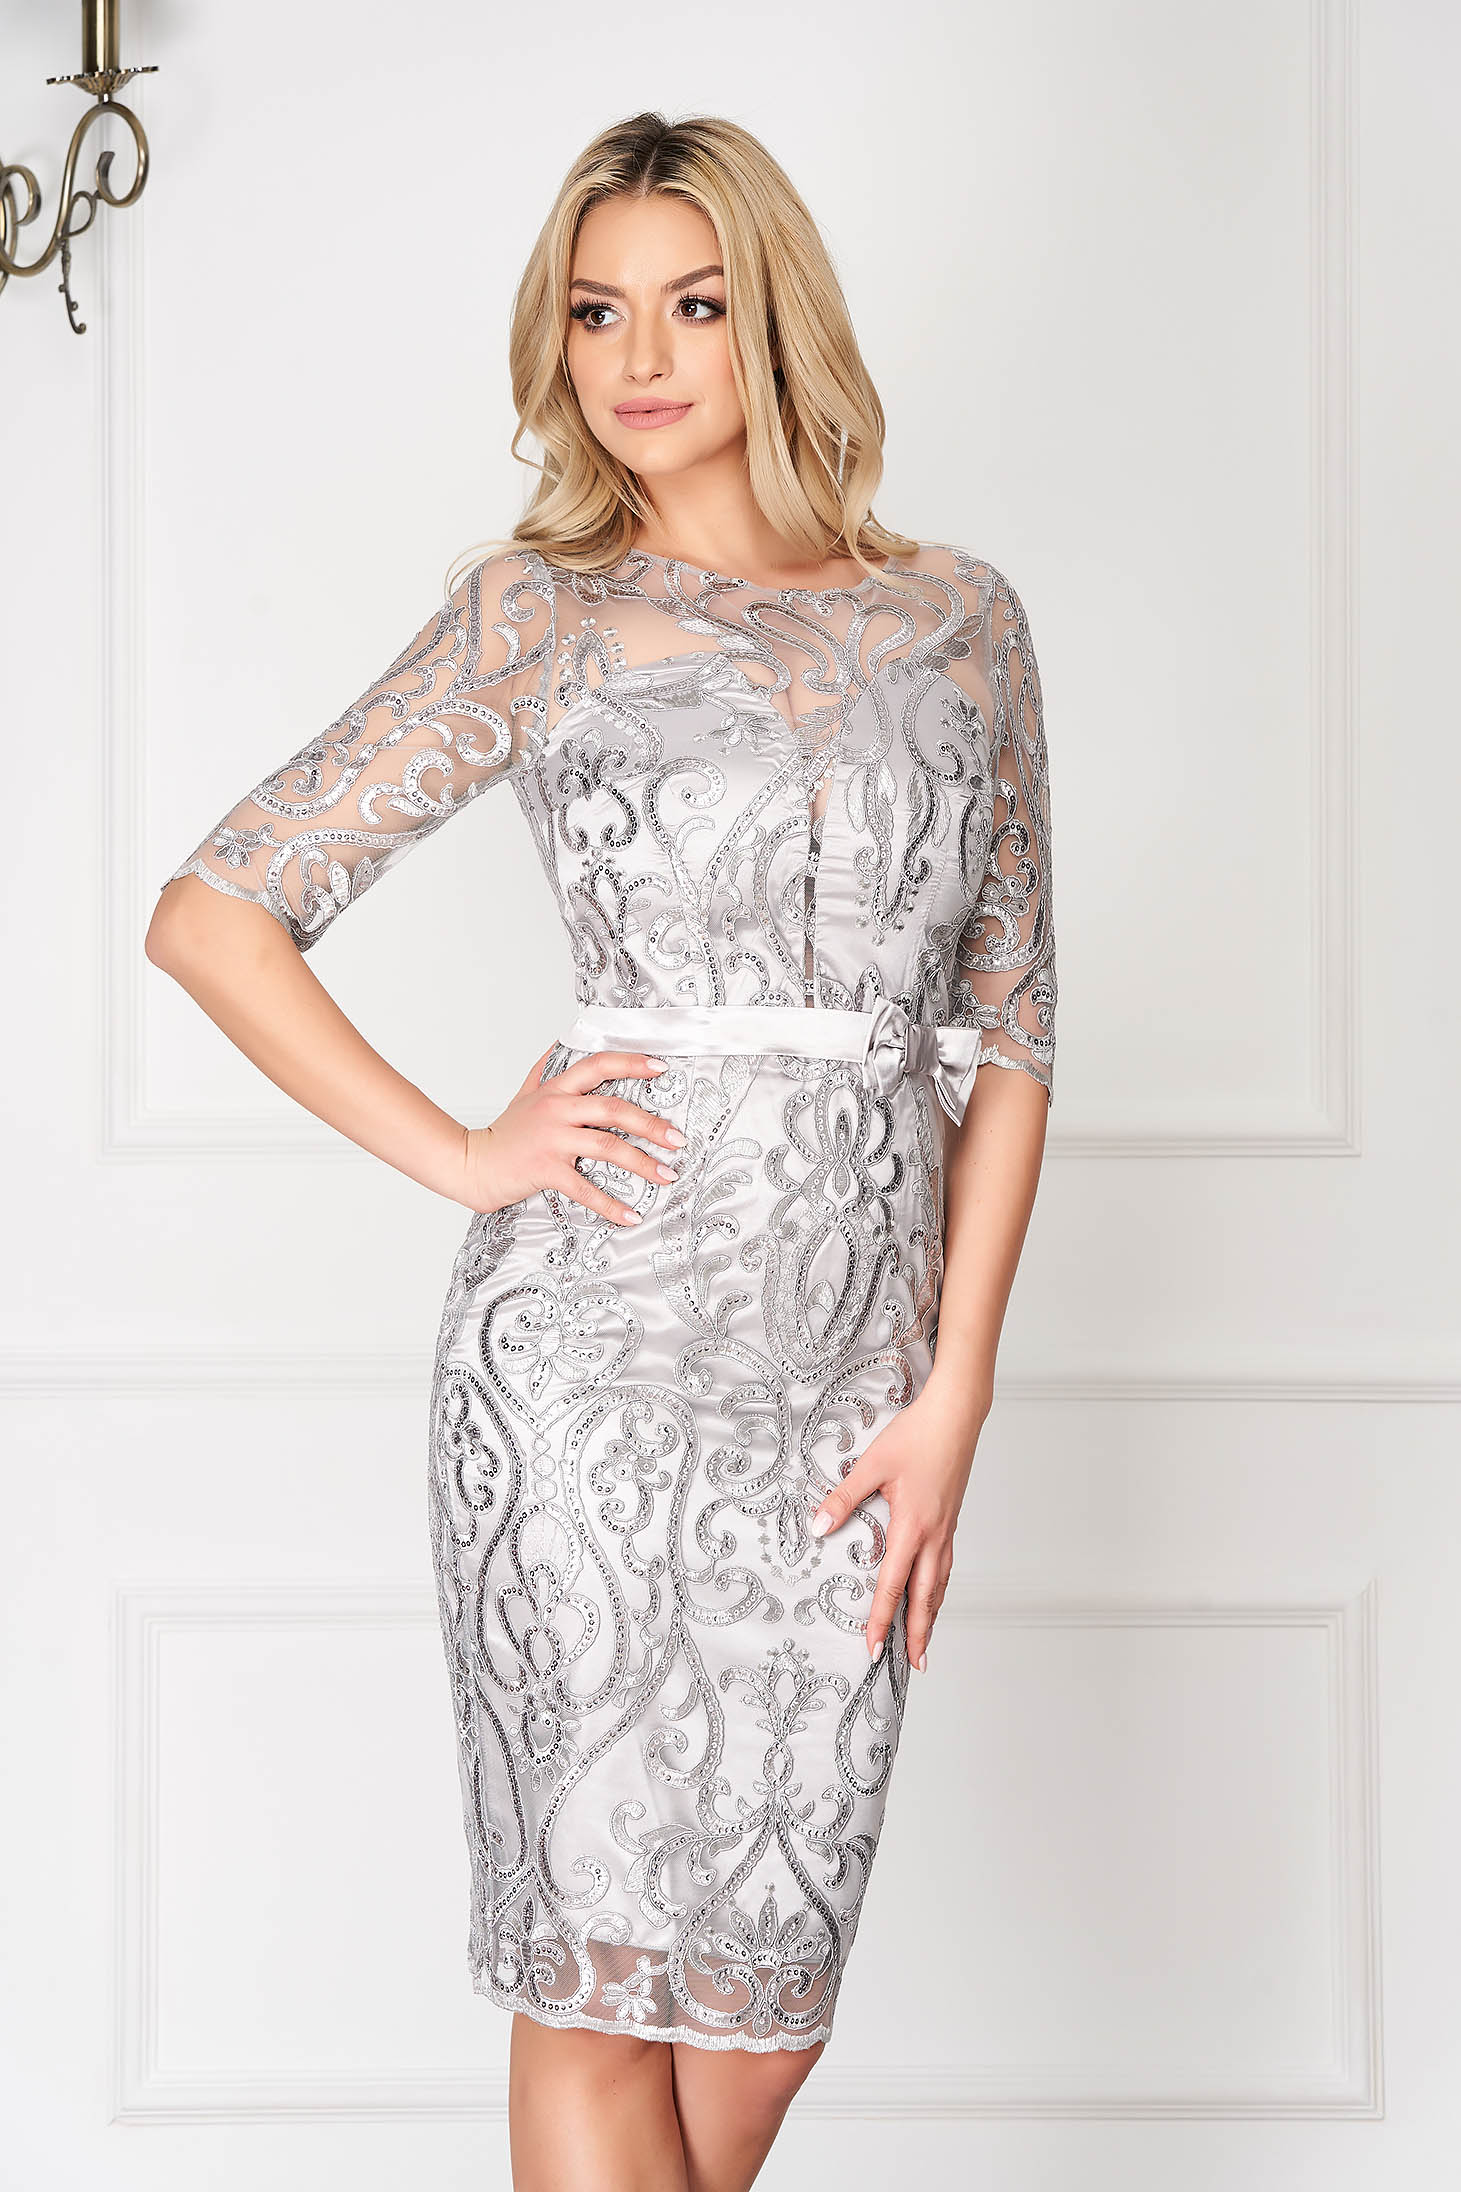 Silver dress occasional midi pencil with sequin embellished details back slit with 3/4 sleeves